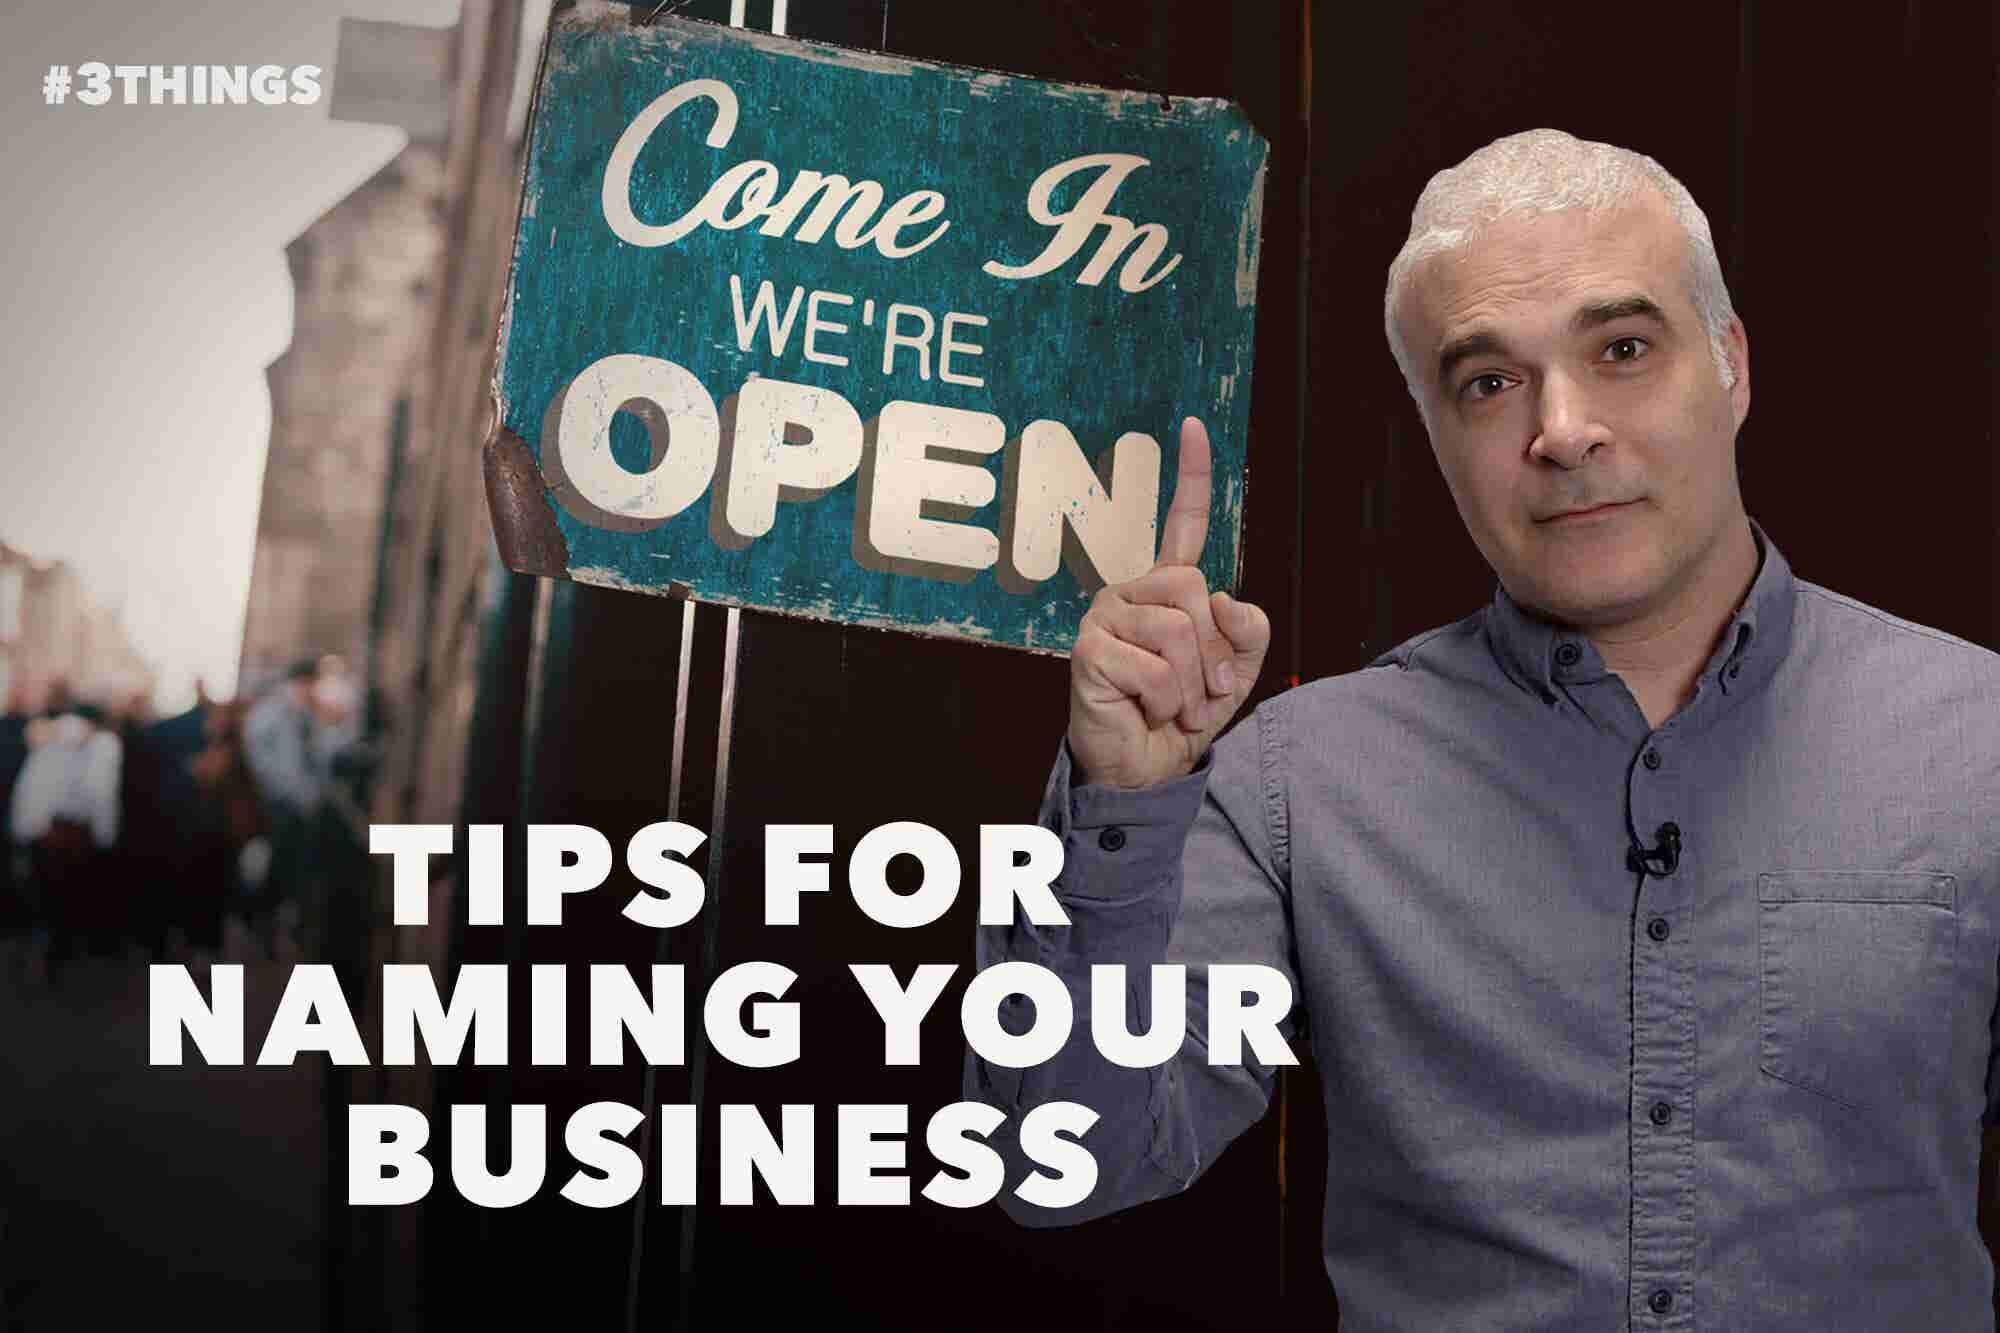 More Great Tips for Naming Your Business (60-Second Video)